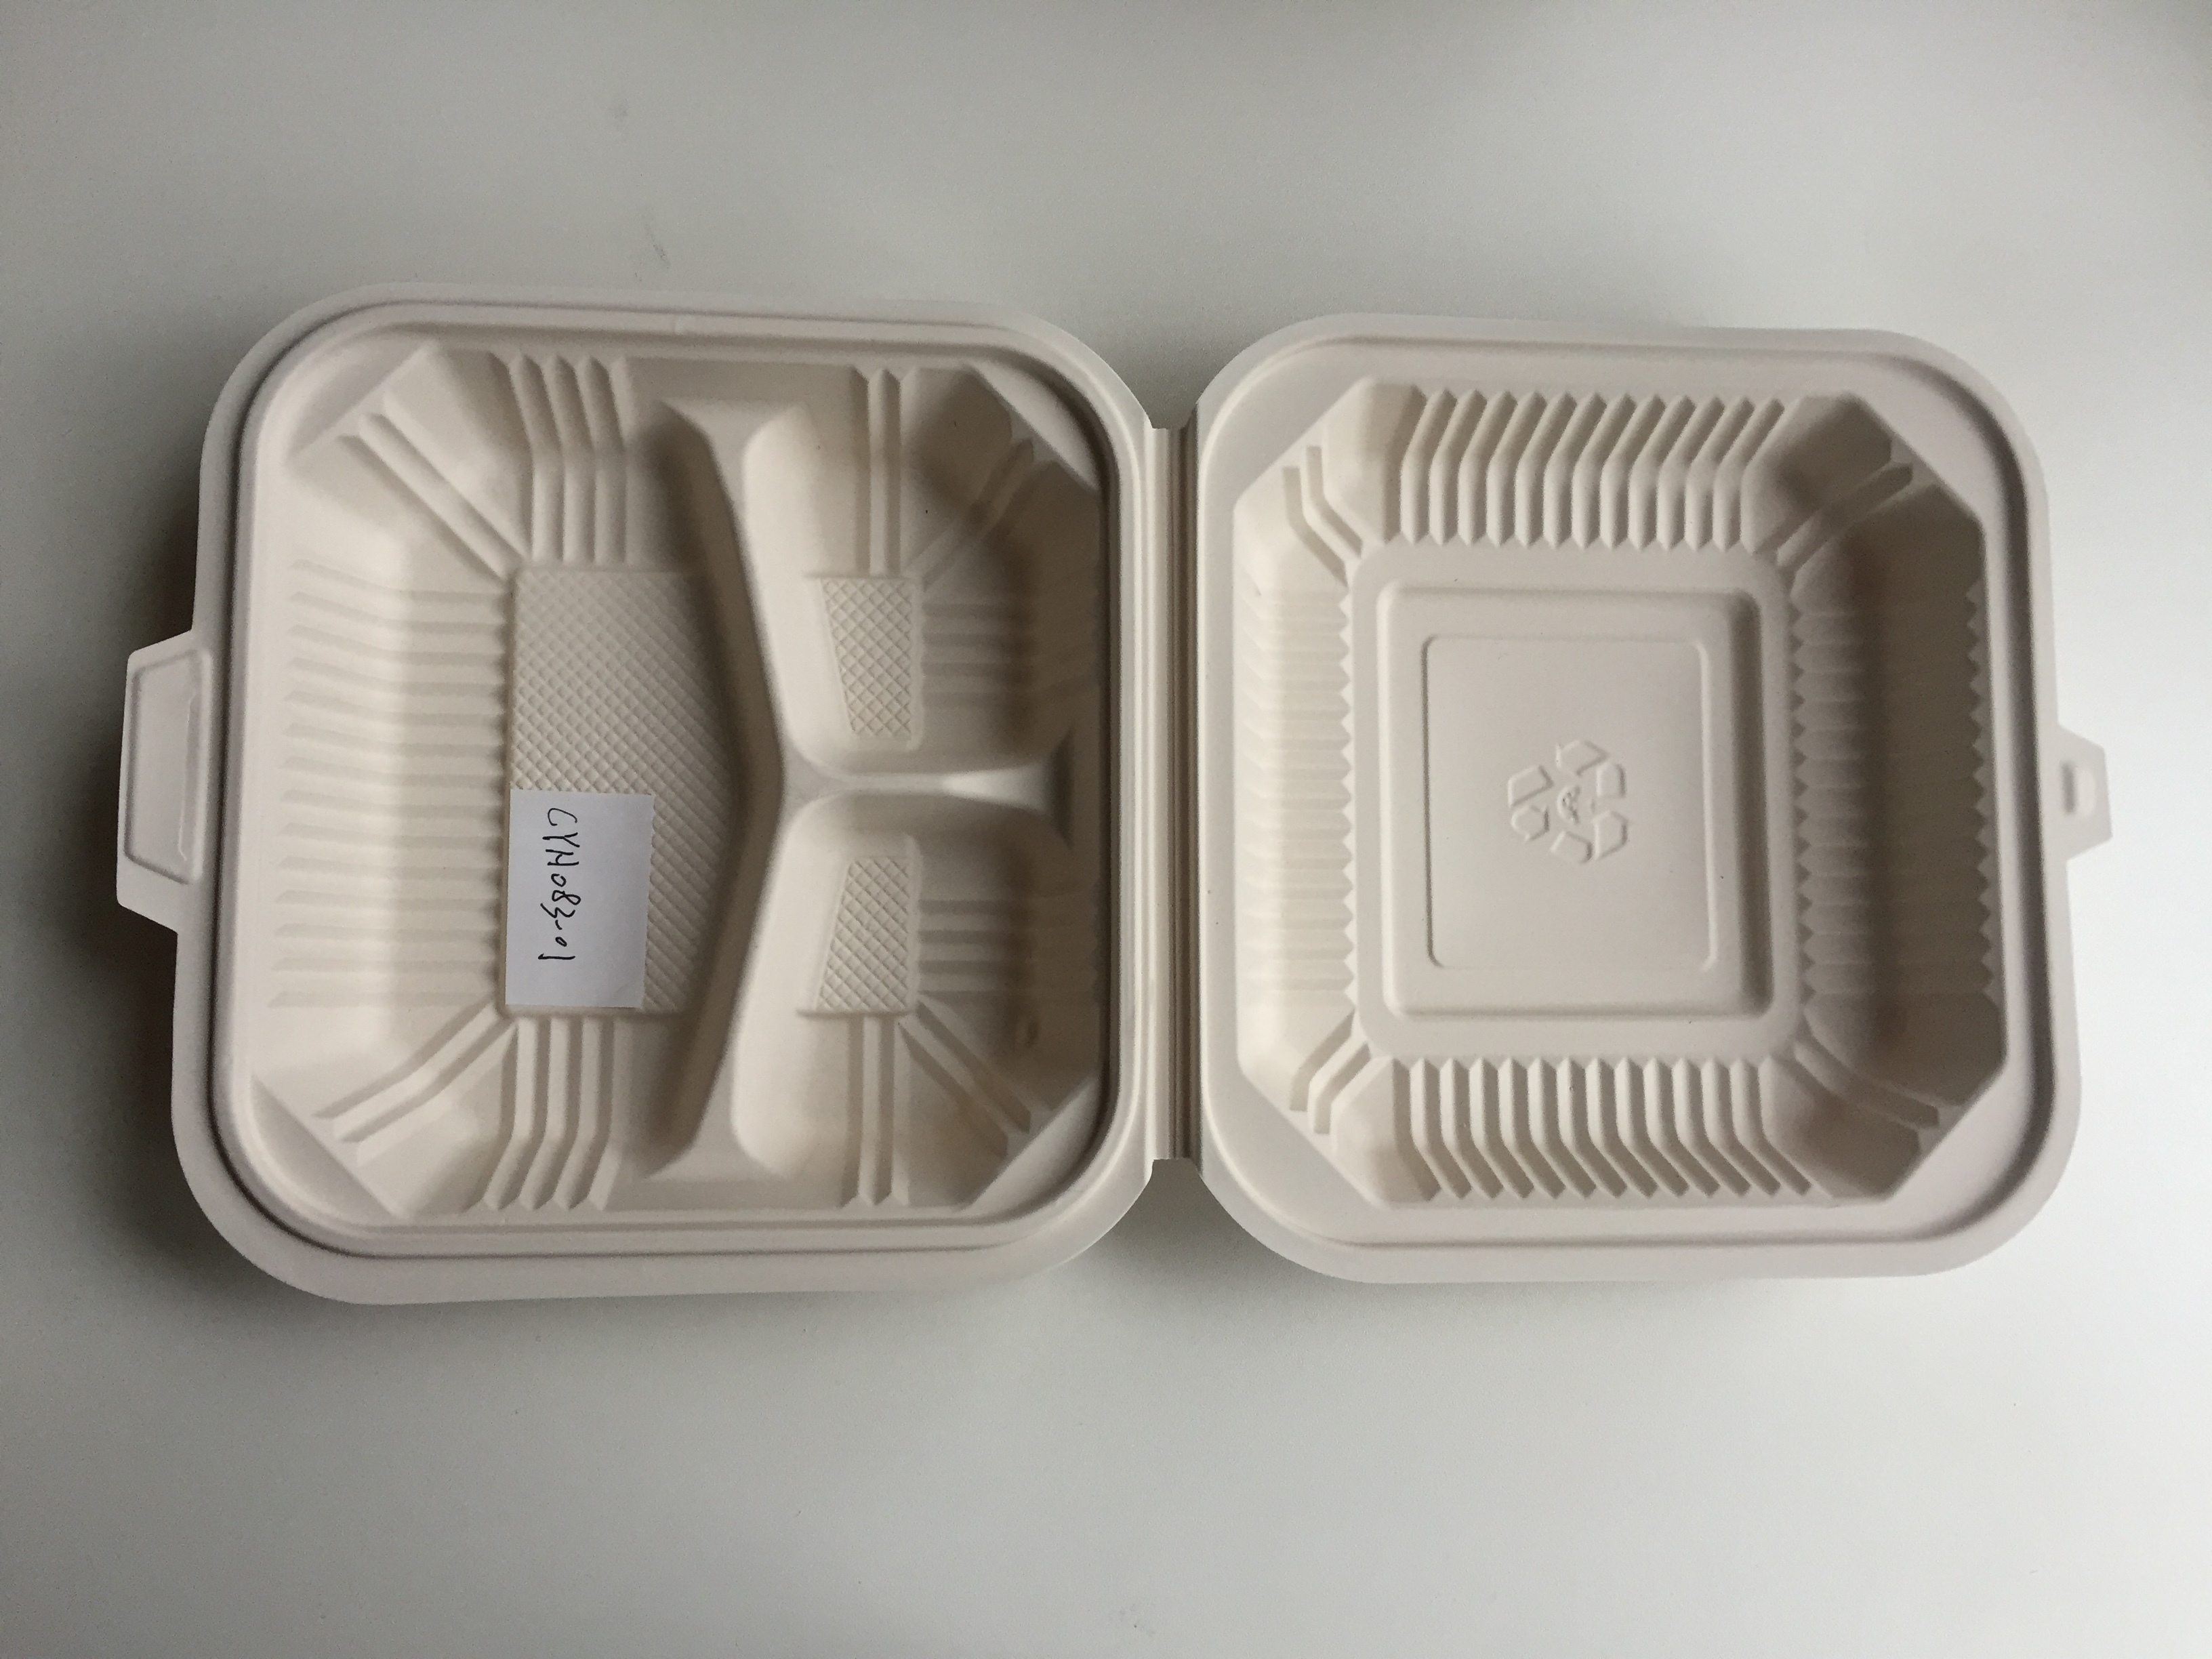 Corn Starch Clamshell Lunch Box